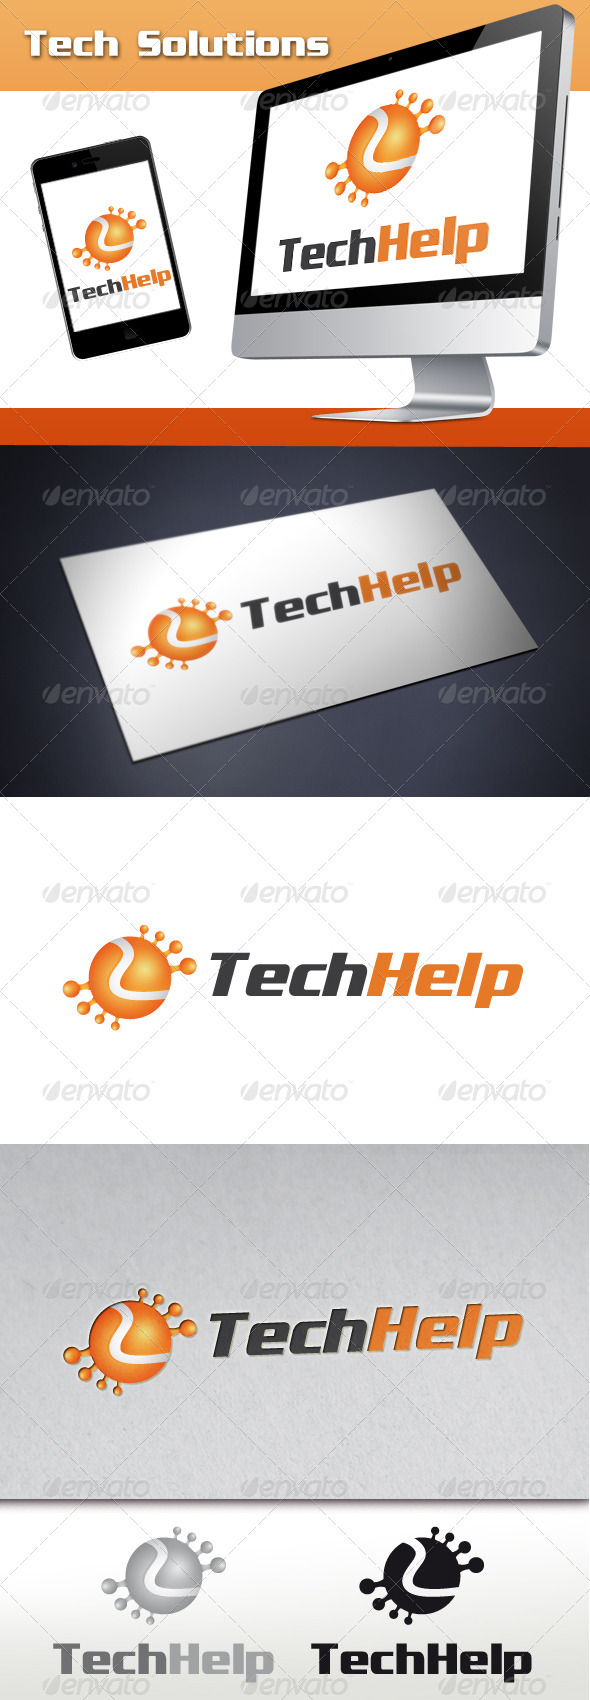 GraphicRiver Tech Solutions Logo 3473802